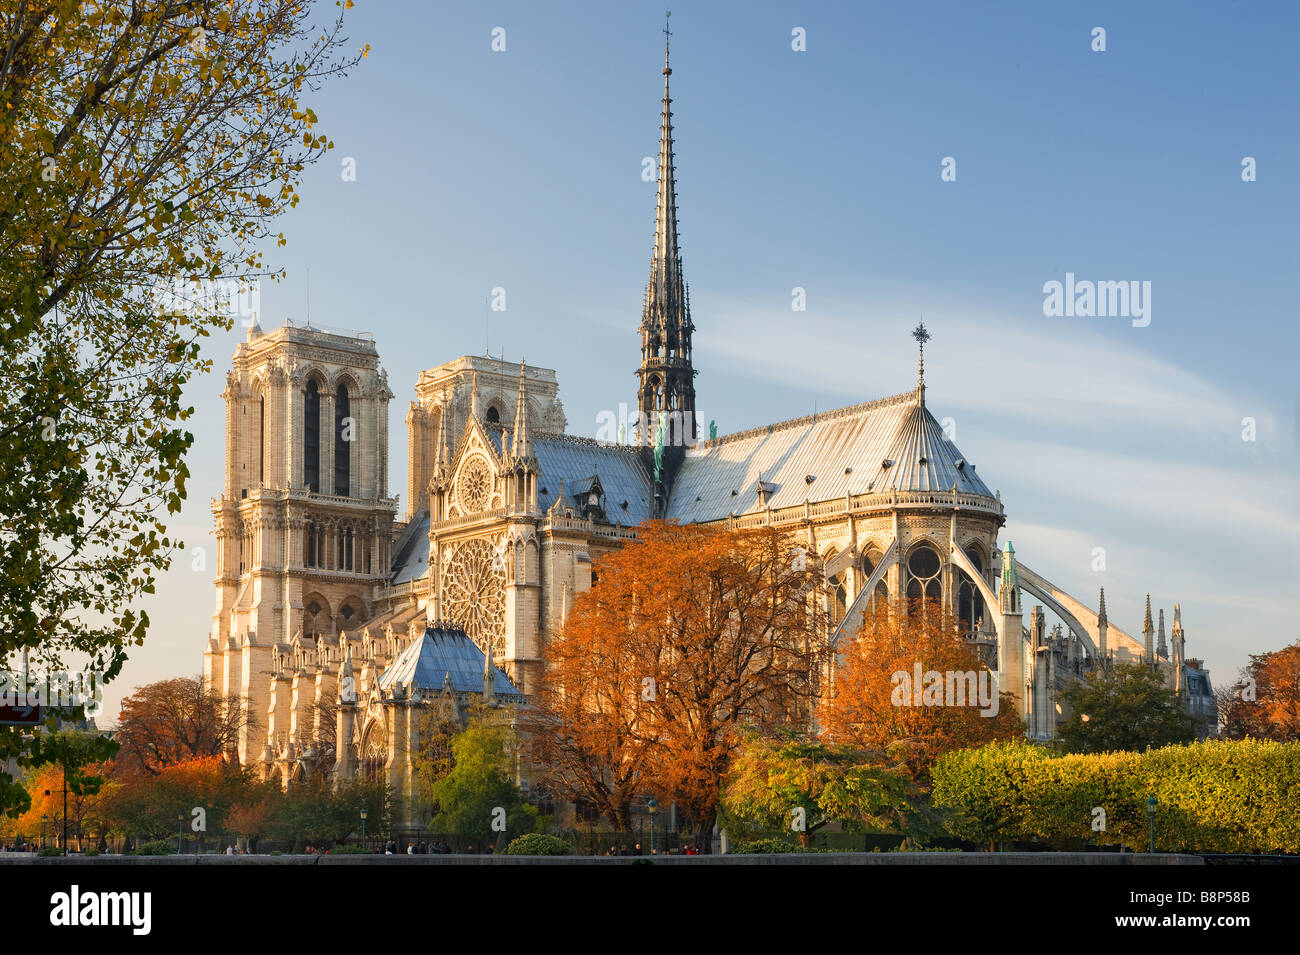 Notre Dame Viewed in the evening light Paris France - Stock Image